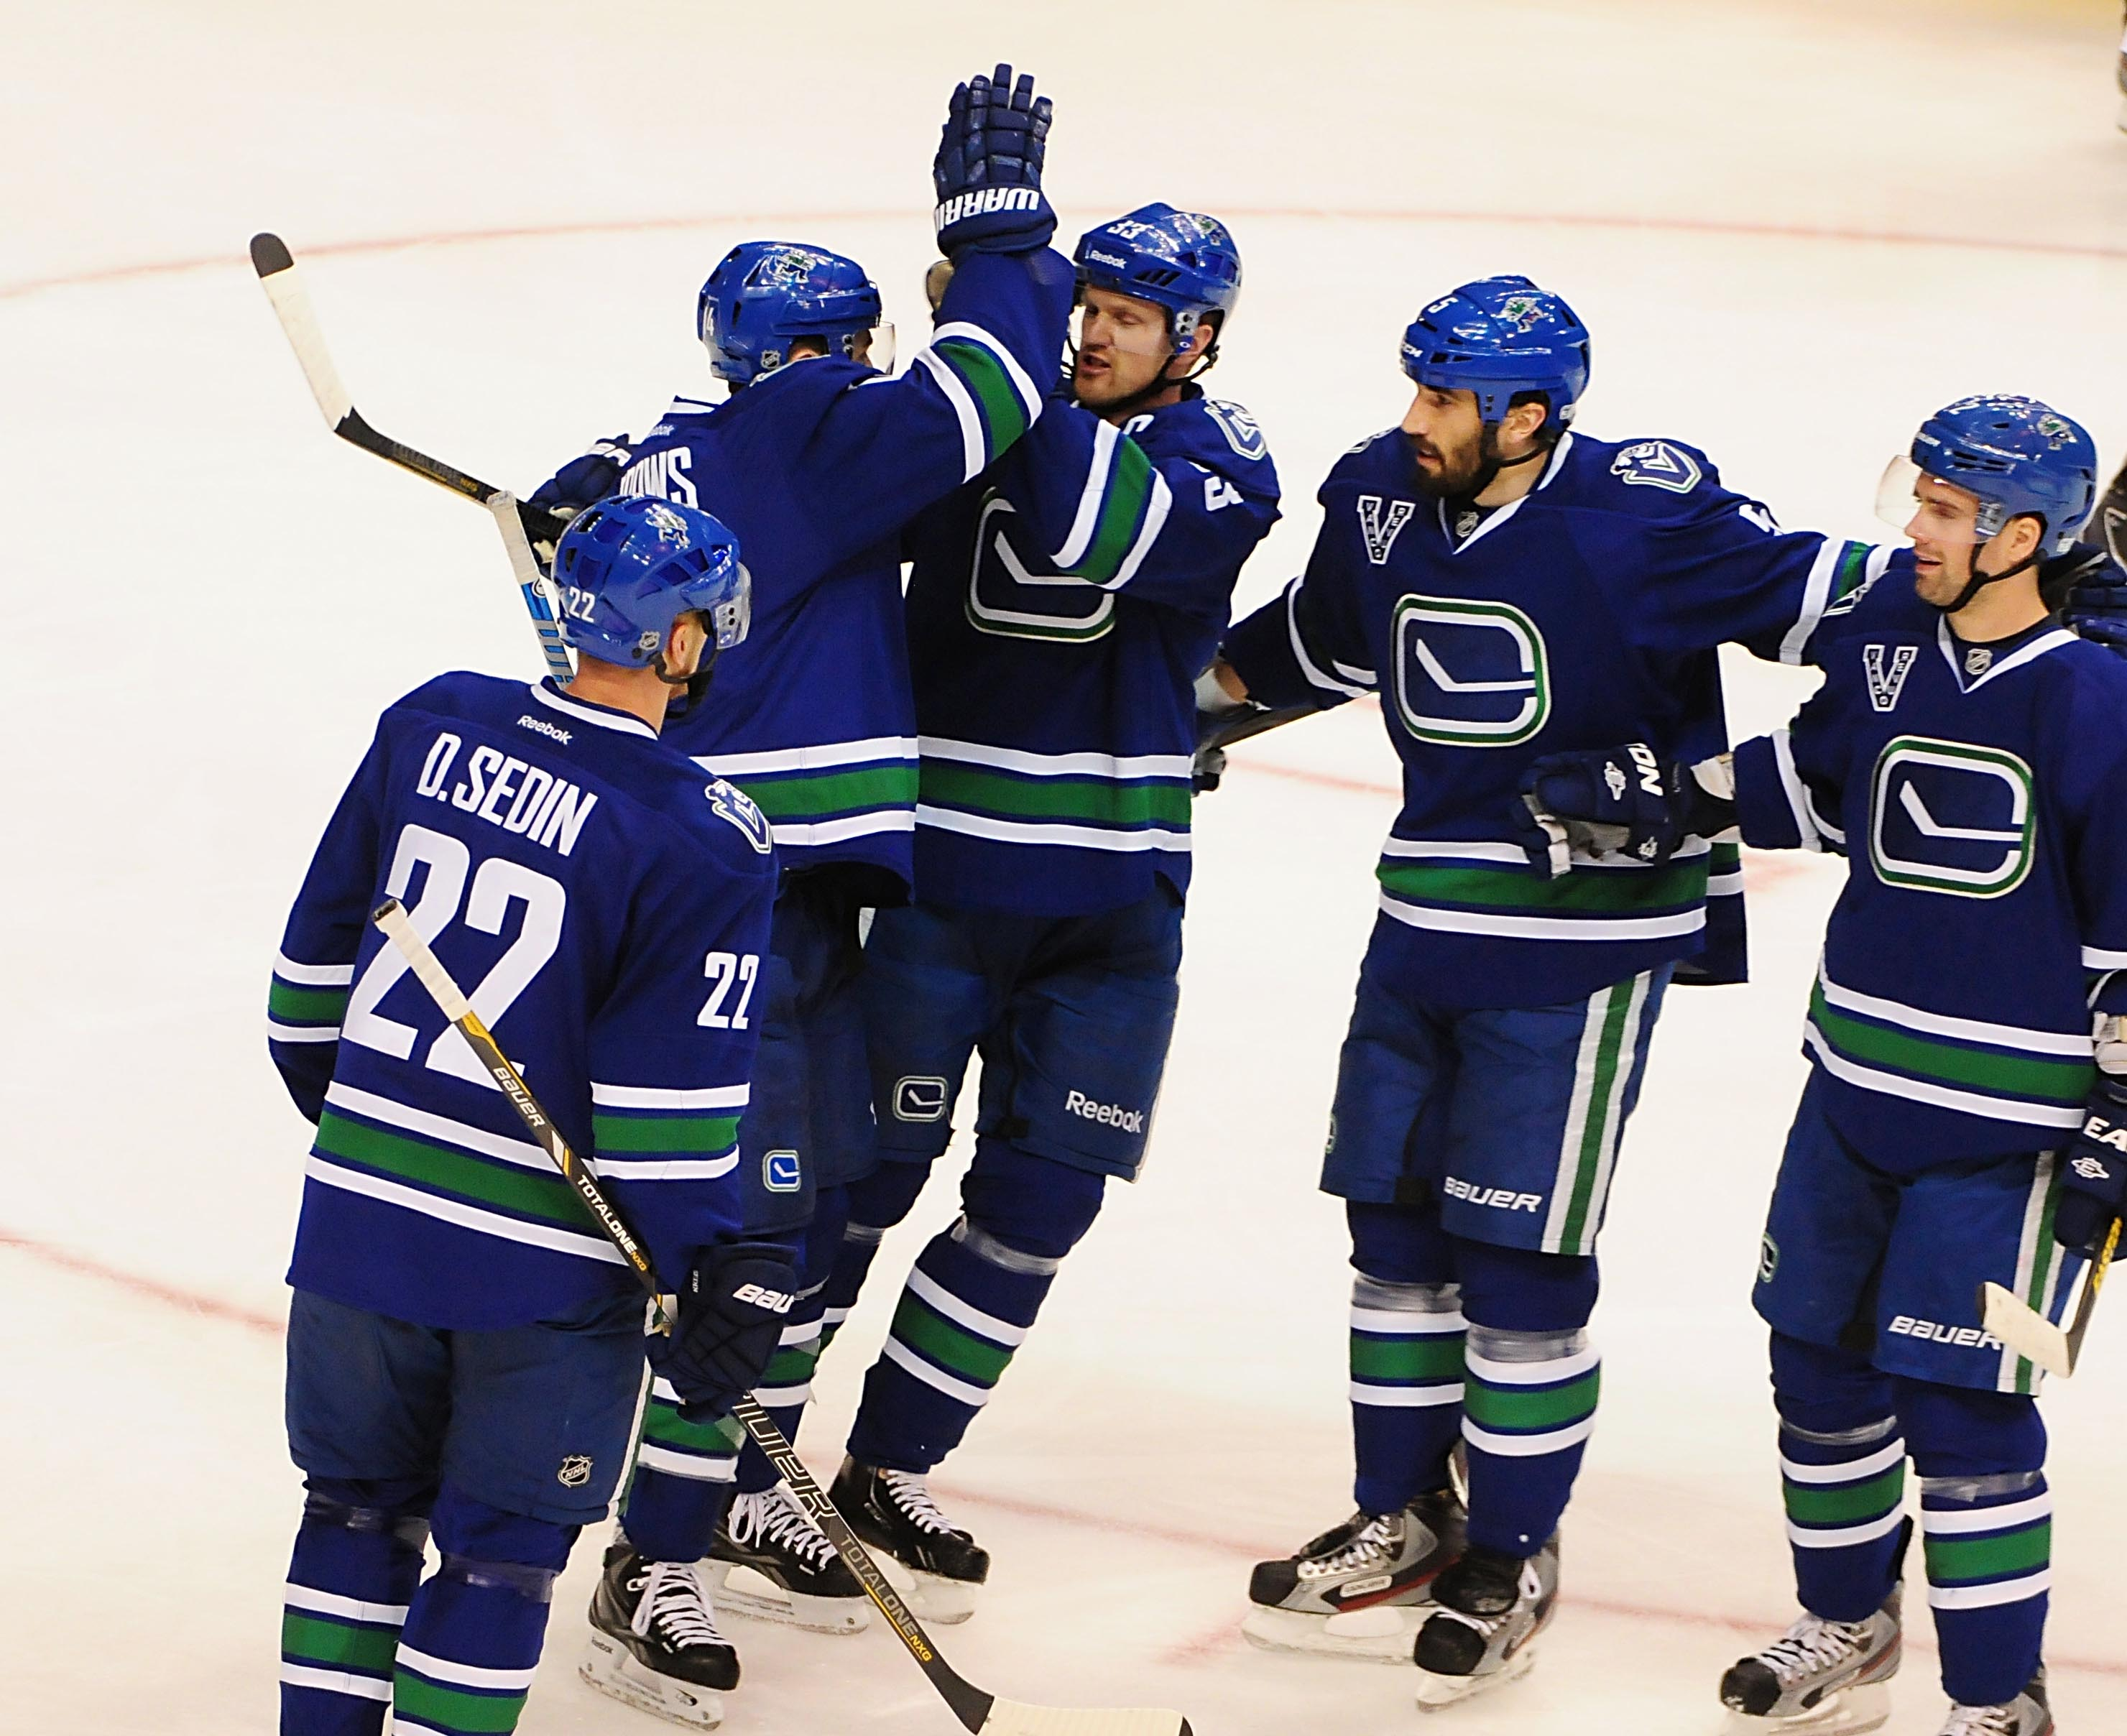 The Canucks have been a top team for several years, but the Cup continues to elude them. (USA Today)